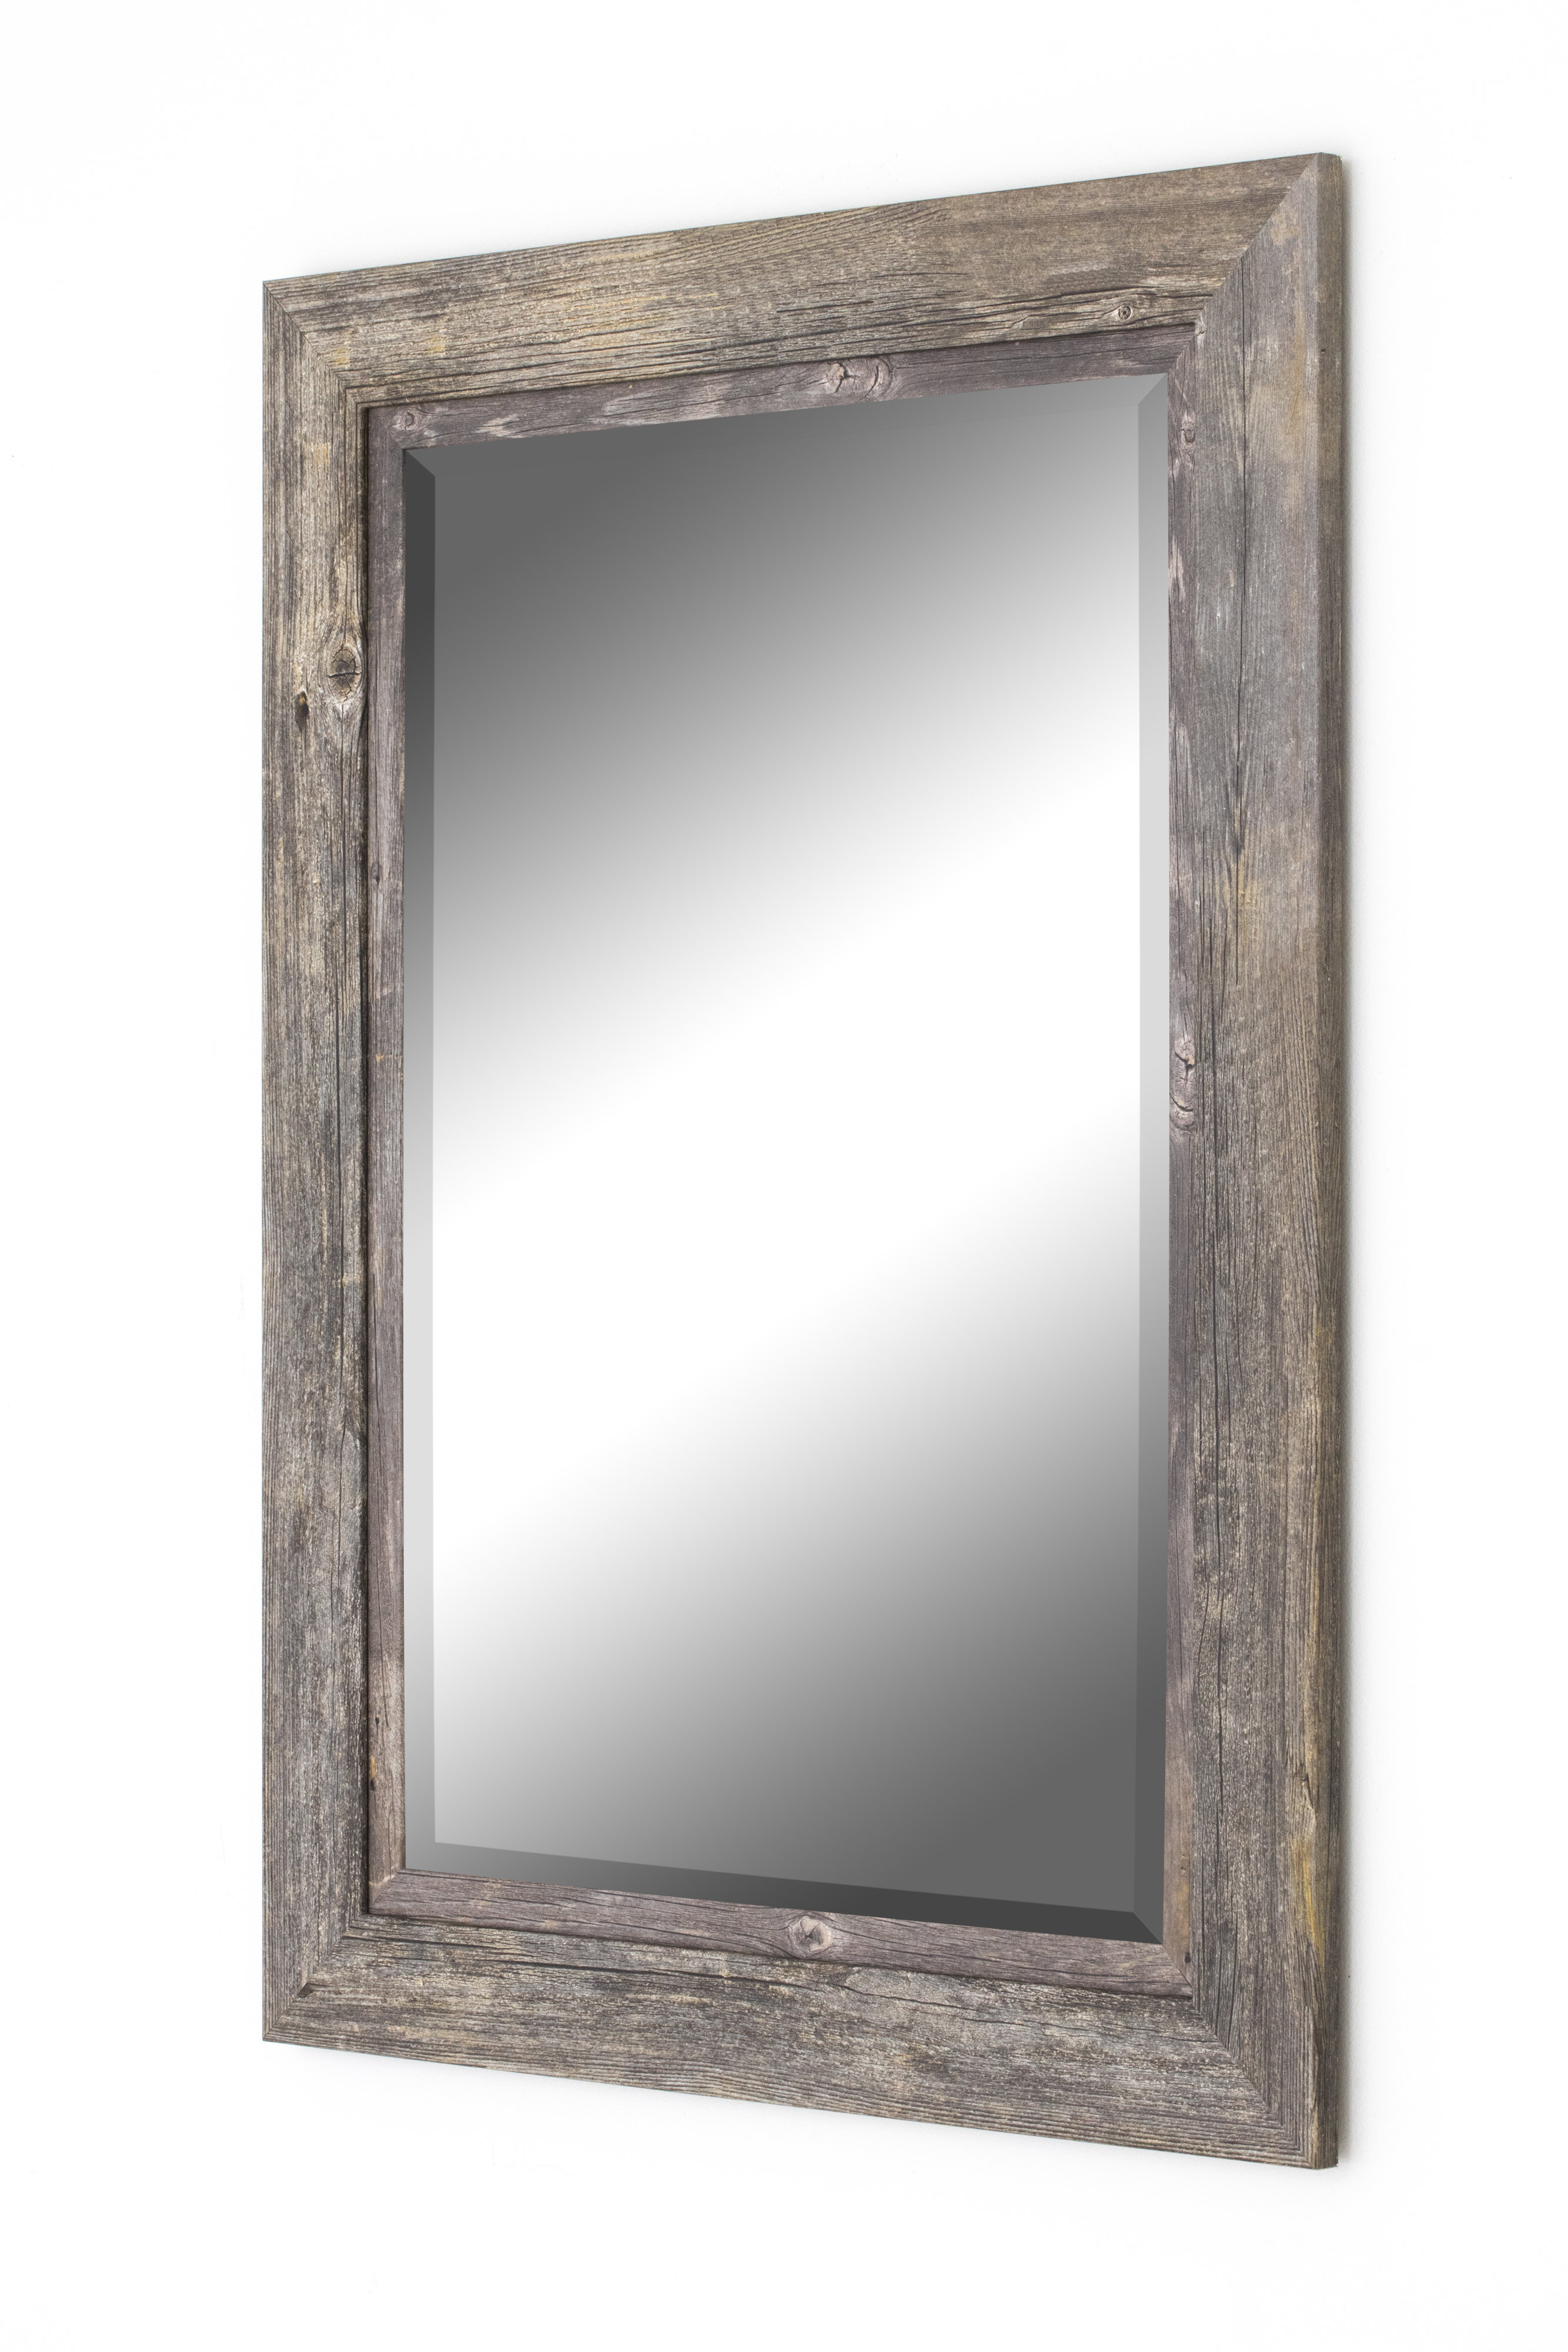 Traditional Beveled Accent Mirror Pertaining To Traditional Beveled Accent Mirrors (Image 13 of 20)